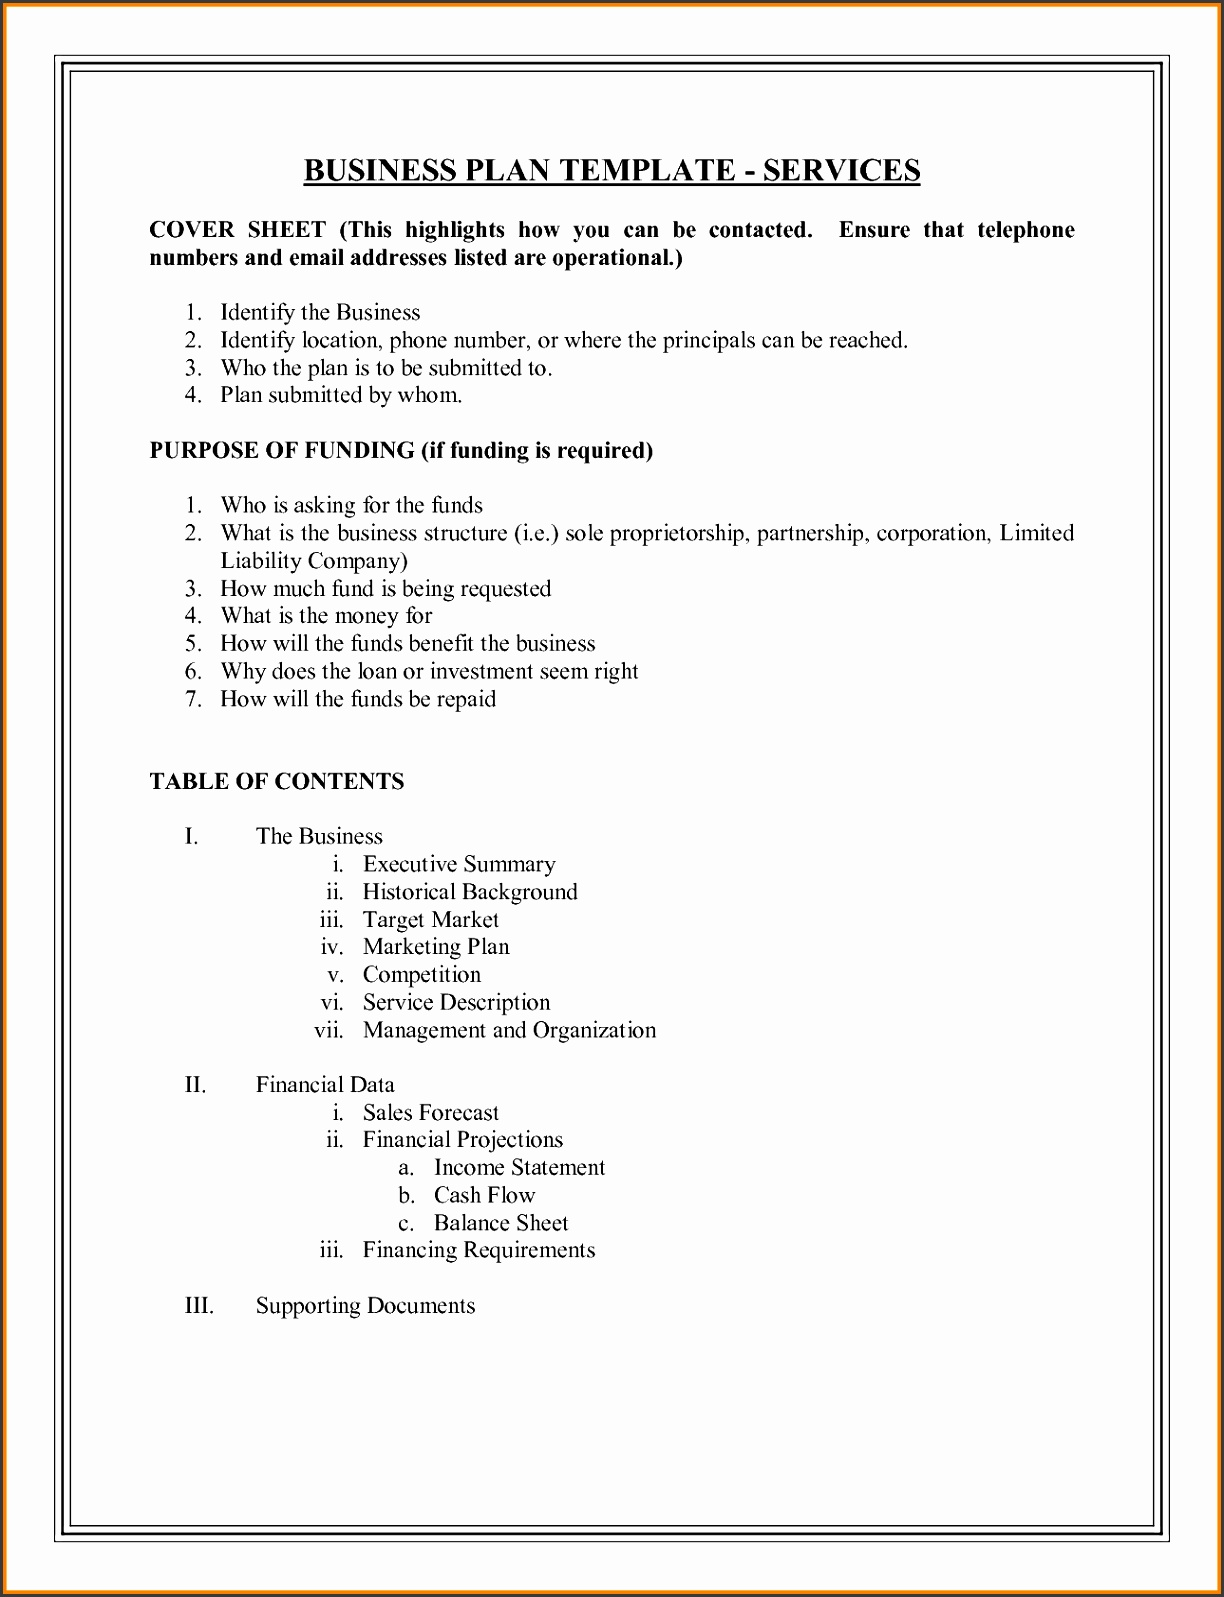 Business Plans For Coffee Shops Sample Plan Bakery In The Philippineslikewisesample Poultry Production Pdf Shop Philippines